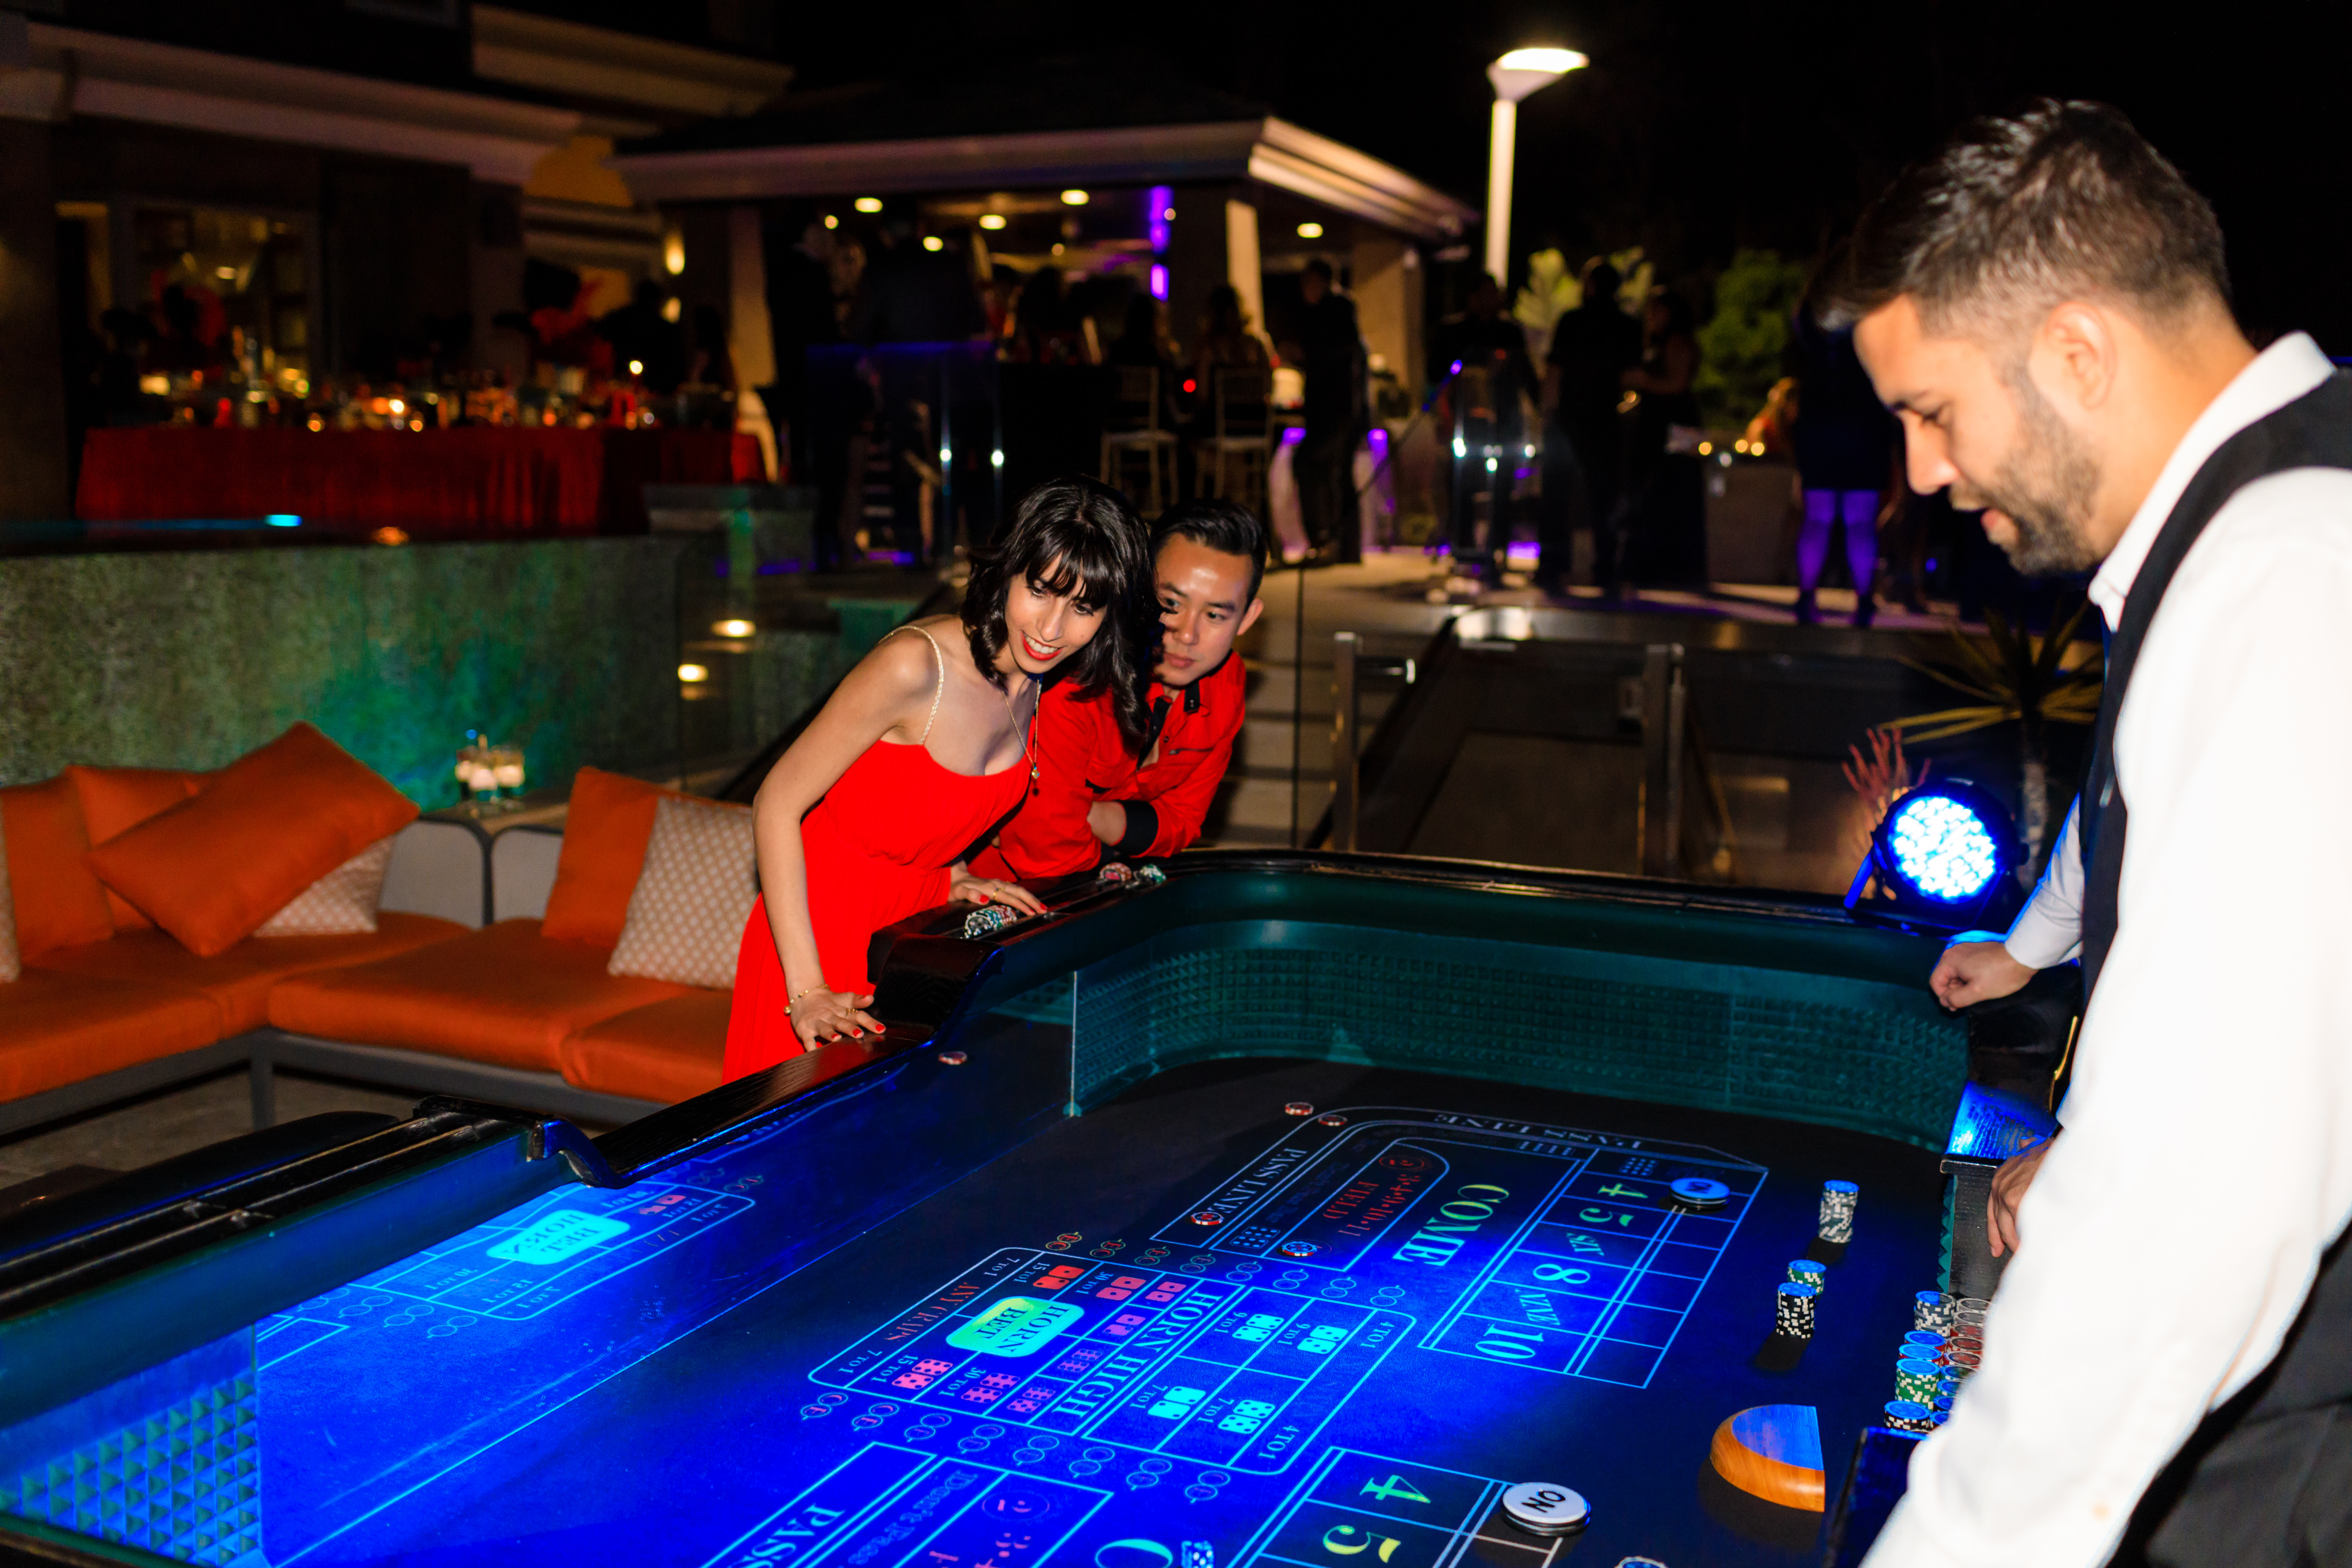 Casino Night - Visuals by Arpit